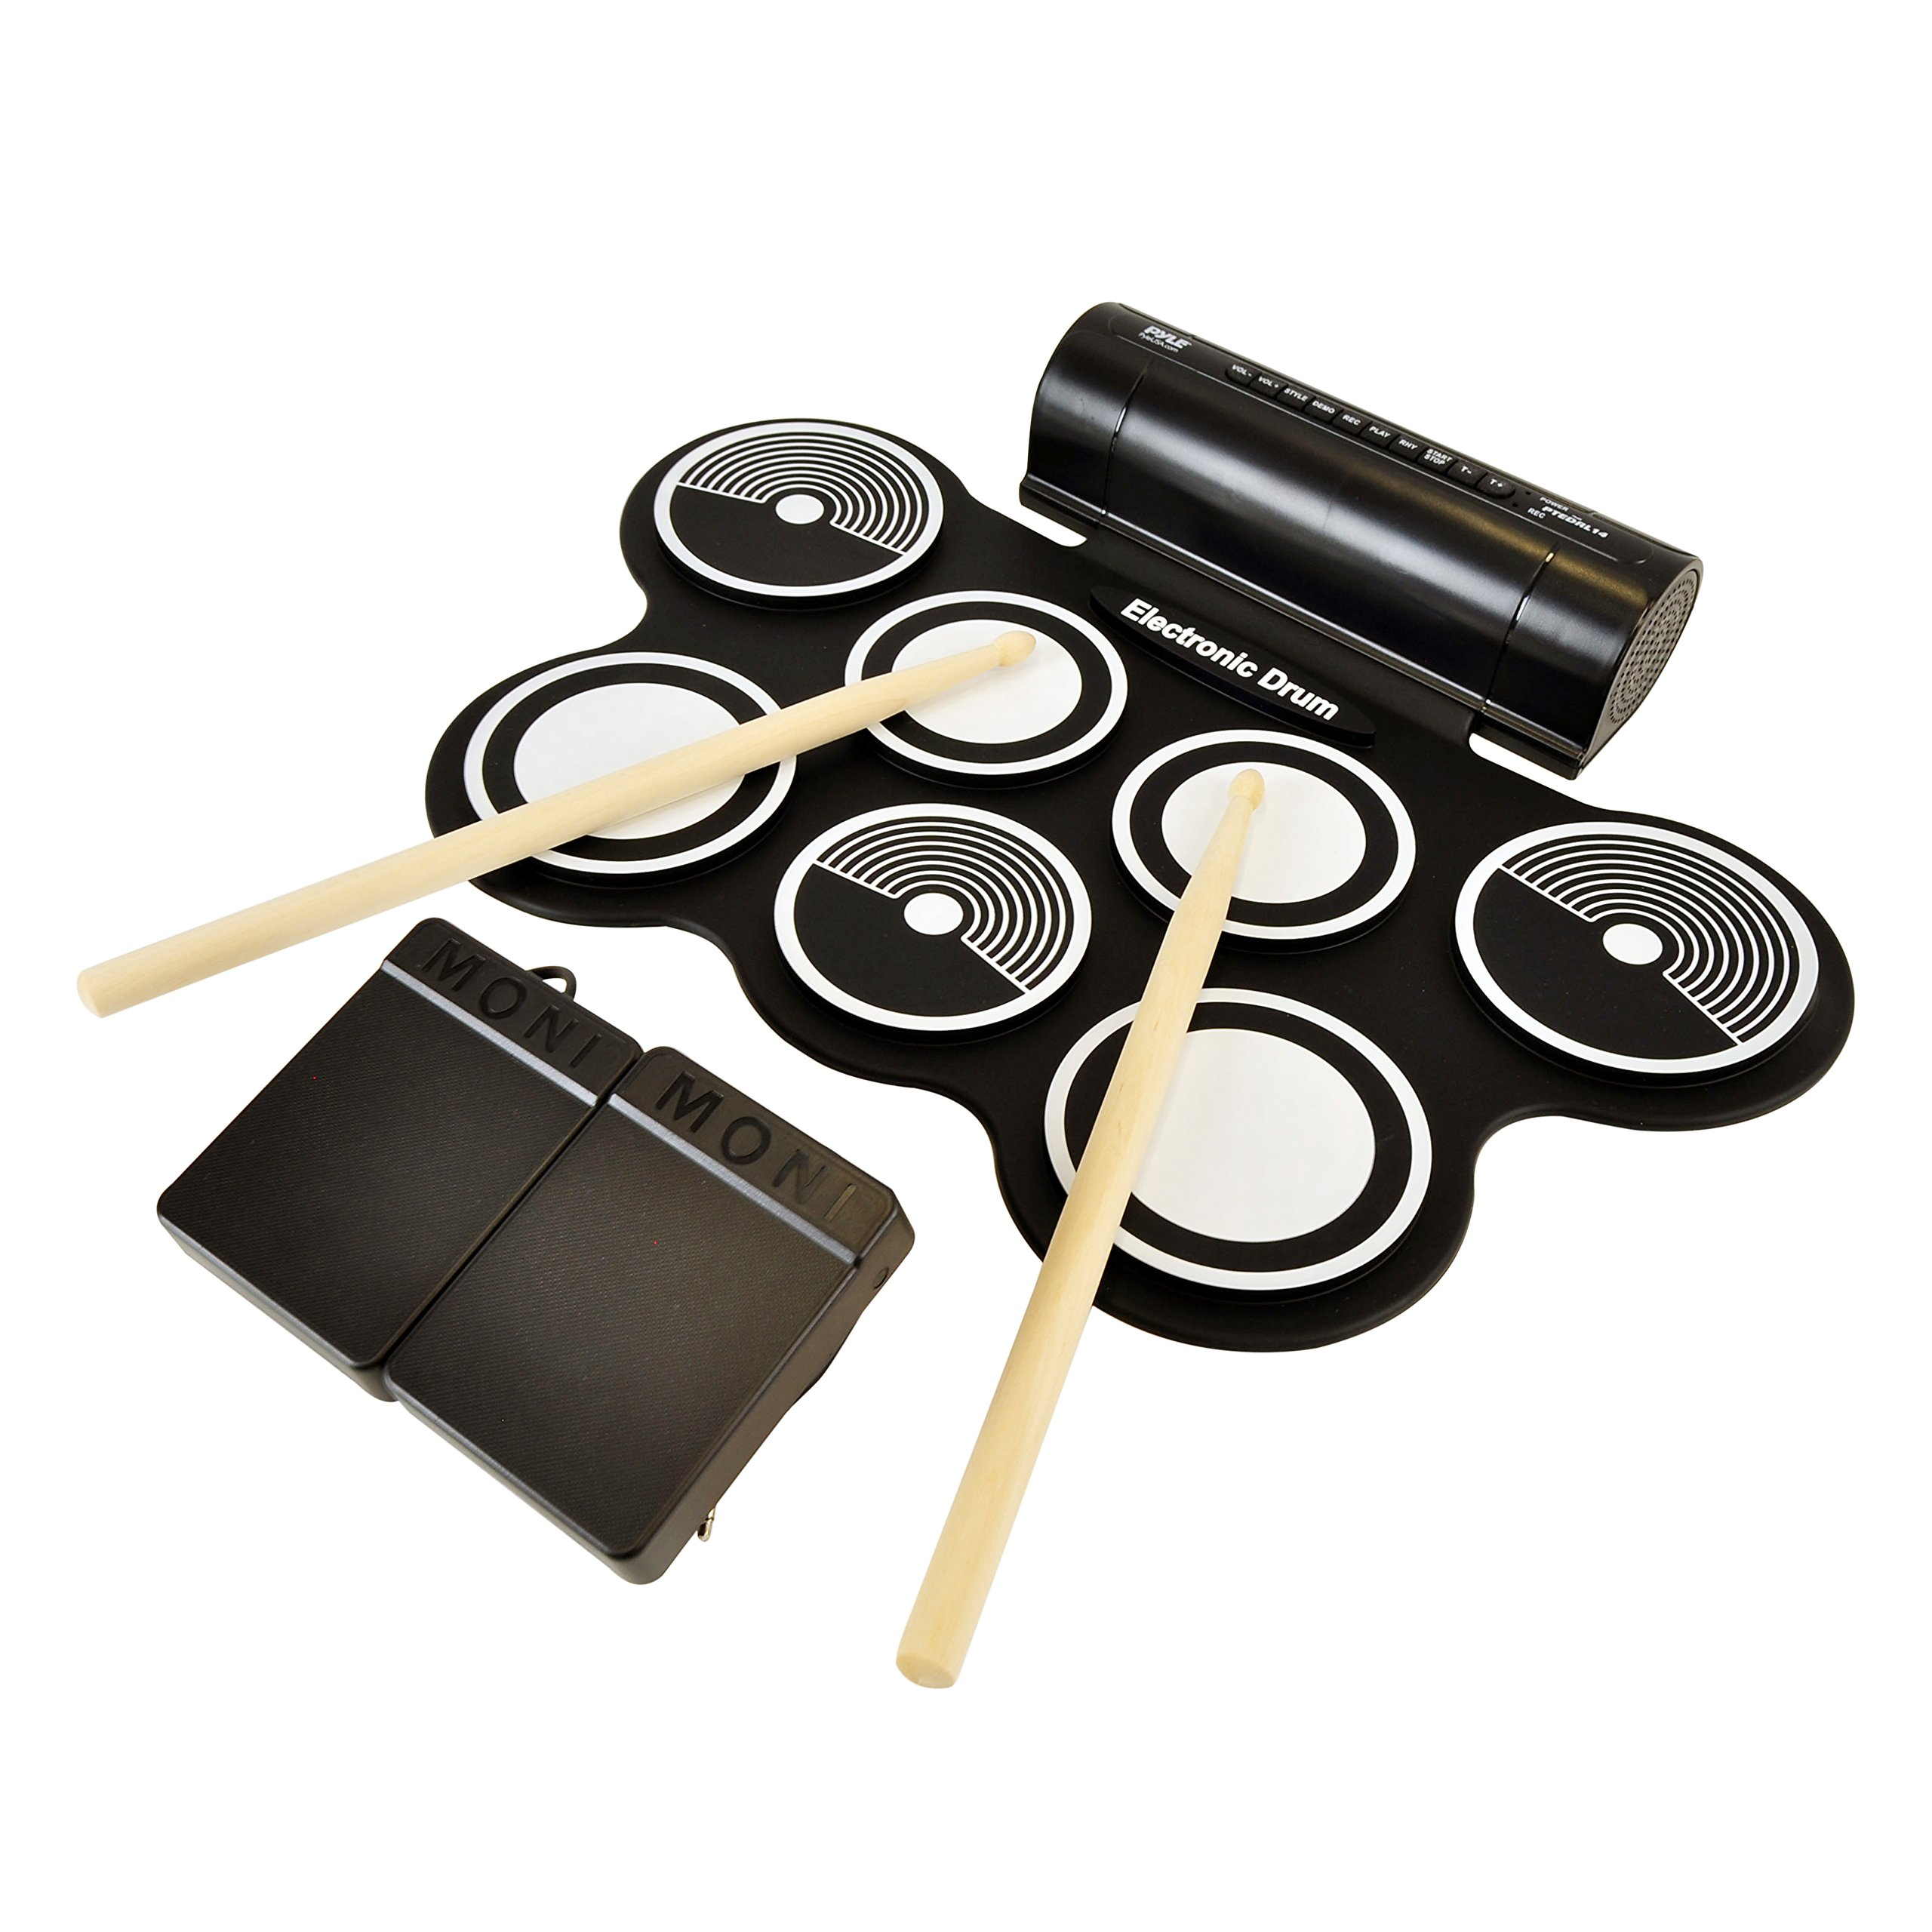 Pyle Electronic Roll Up MIDI Drum Kit W/ 7 Electric Drum Pads, Built-In Speakers, Foot Pedals, Drumsticks, & Power Supply Tabletop Roll Up Drum Kit | Loaded W/ Drum Electric Kits & Songs by Pyle